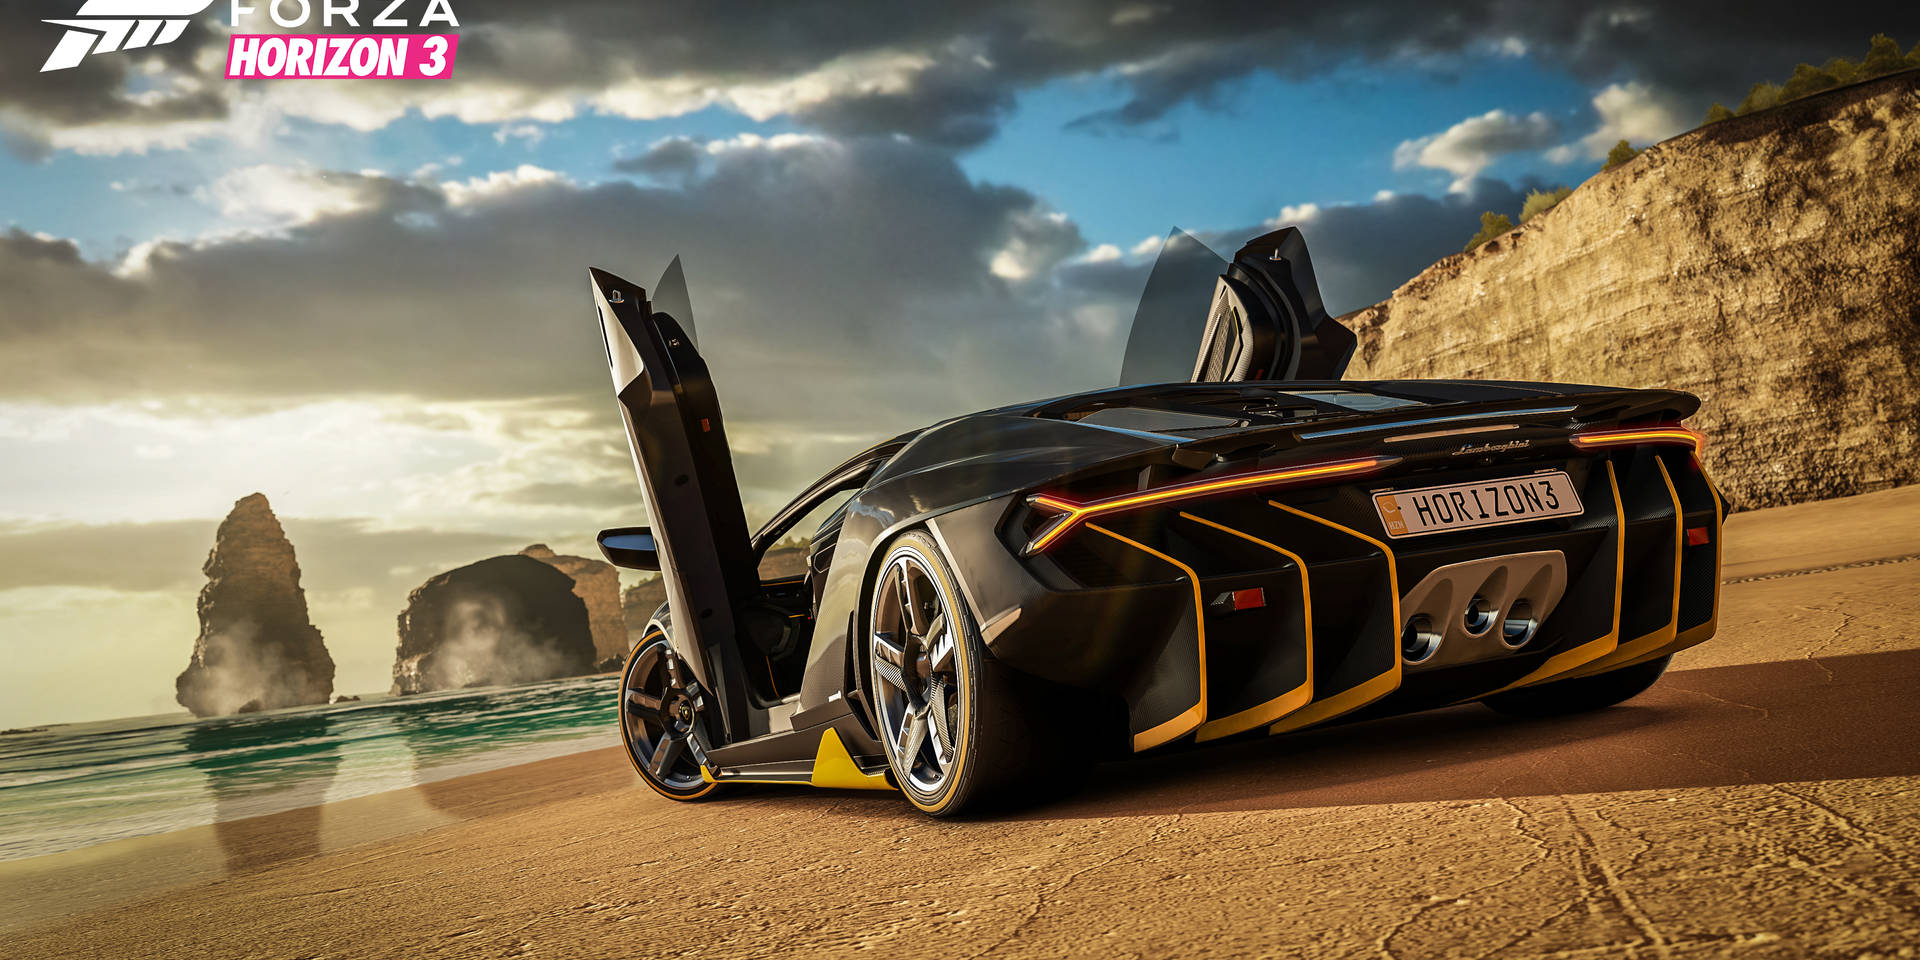 Forza horizon 3 horizon festival car customization your soundtrack storefronts auction house ar12gaming